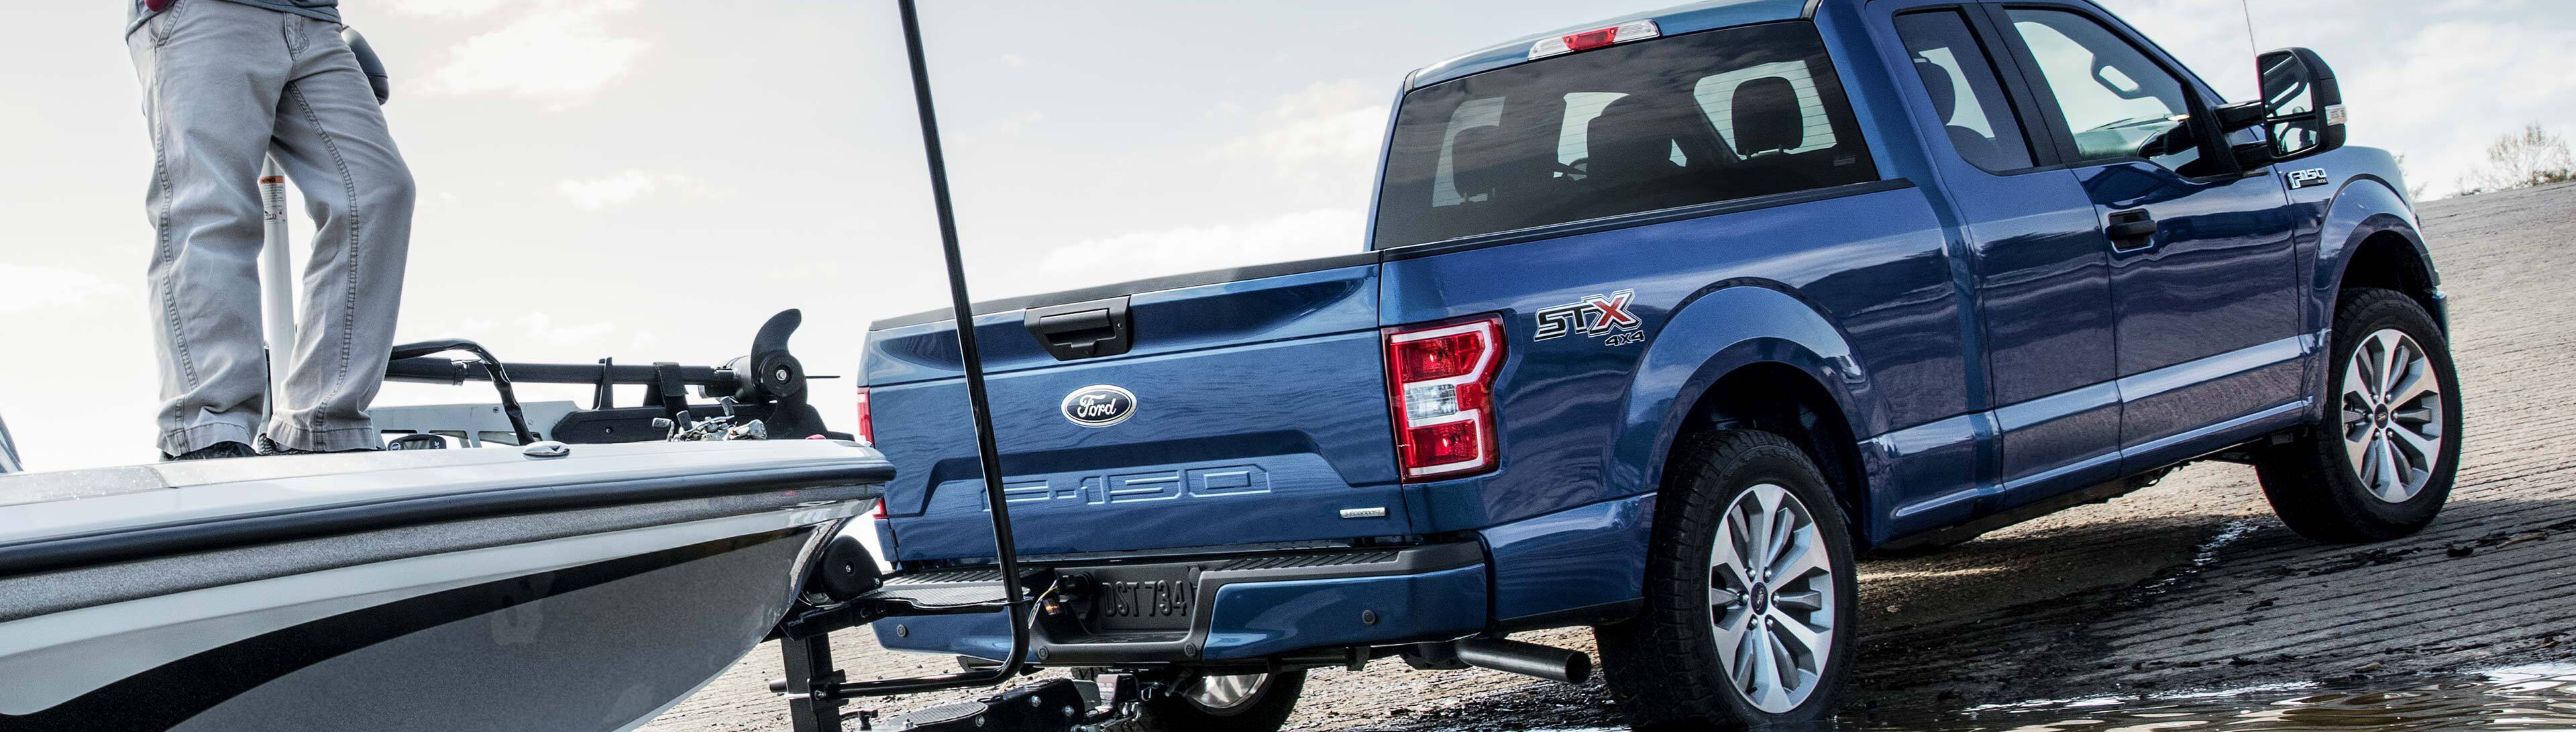 blue 2019 ford f-150 towing a boat